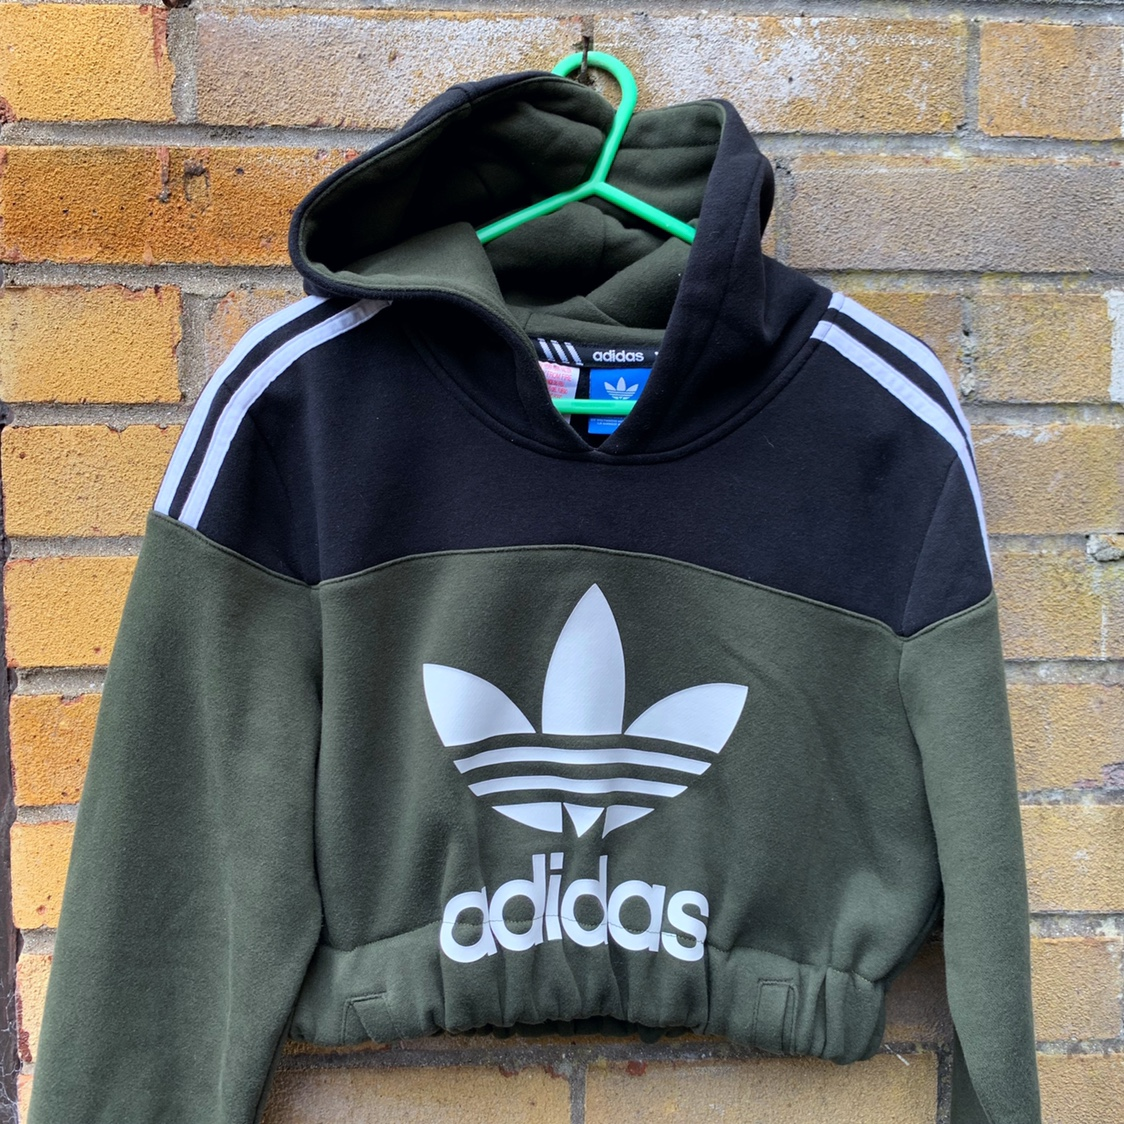 Vintage reworked Y2K olive green Adidas logo hooded